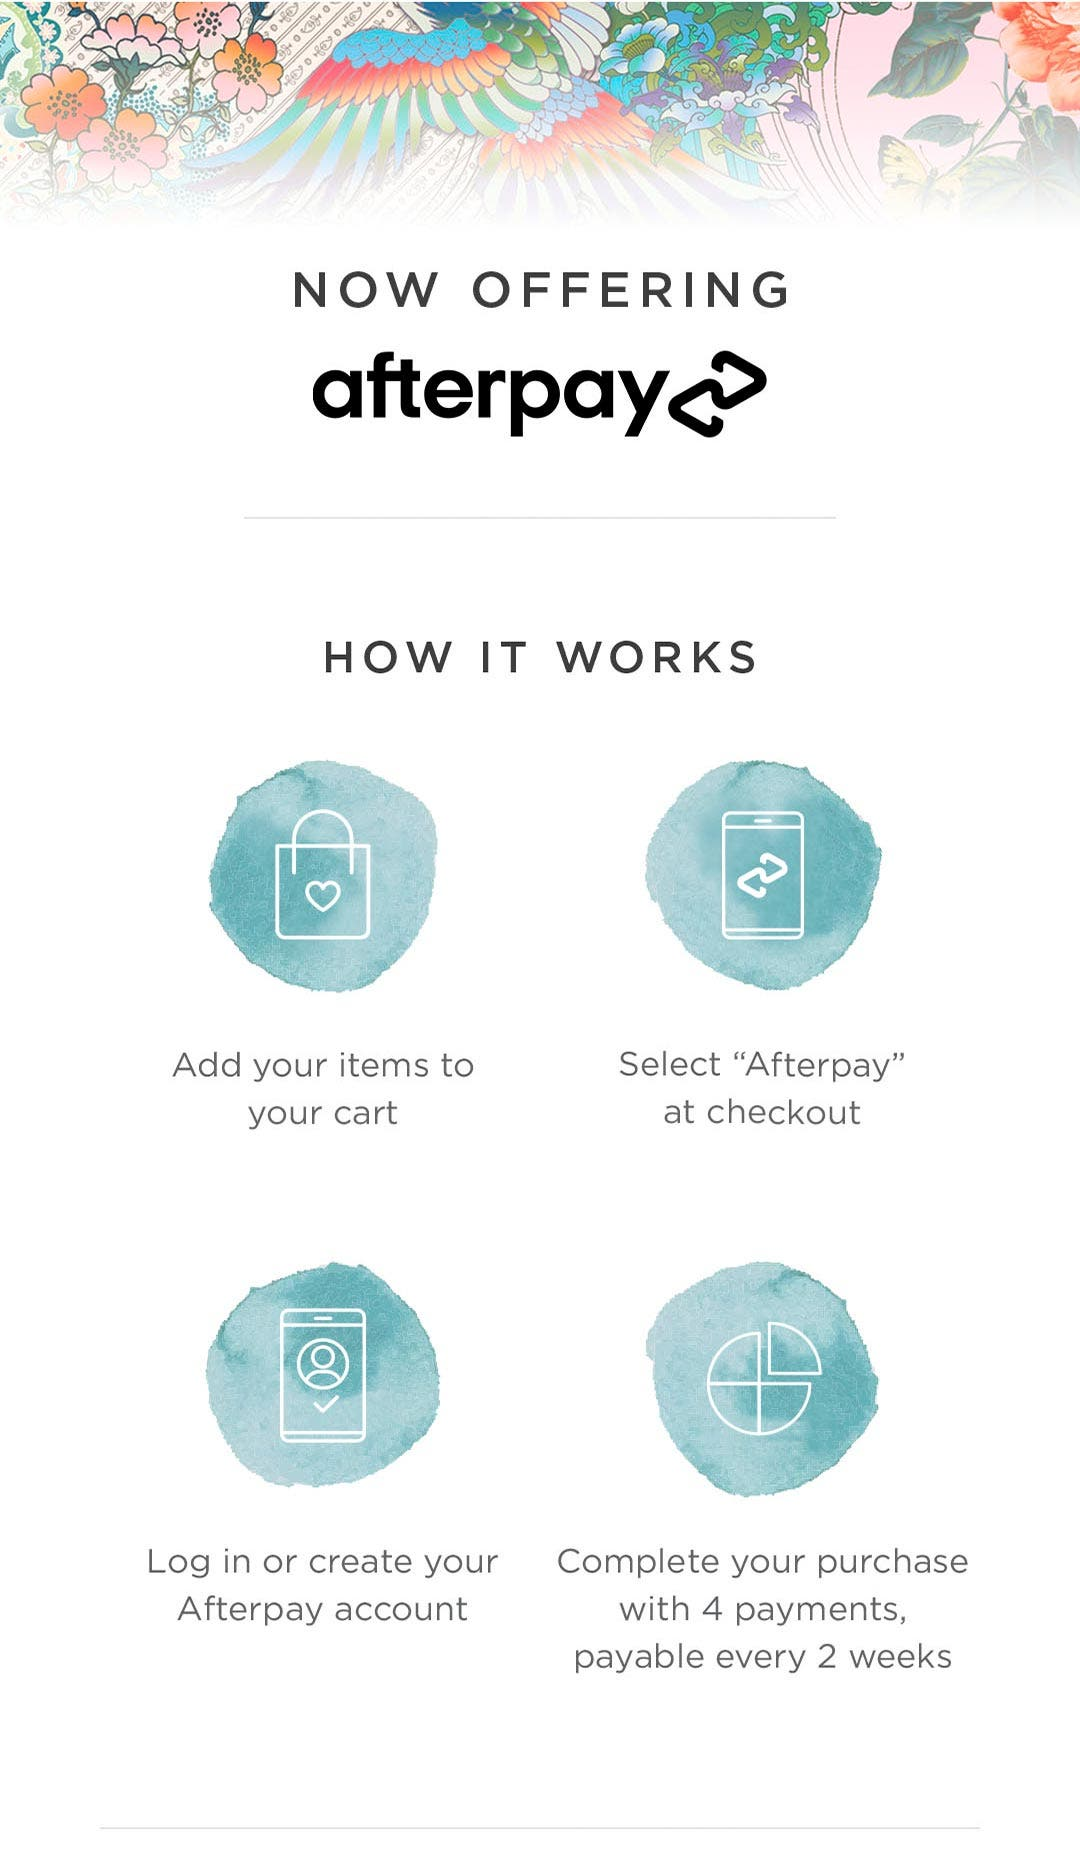 """Now Offering Afterpay - How It Works - 1. Add your items to your cart 2. Select """"Afterpay"""" at checkout 3. Log in or create your Afterpay account 4. Complete your purchase with 4 payments, payable every 2 weeks"""